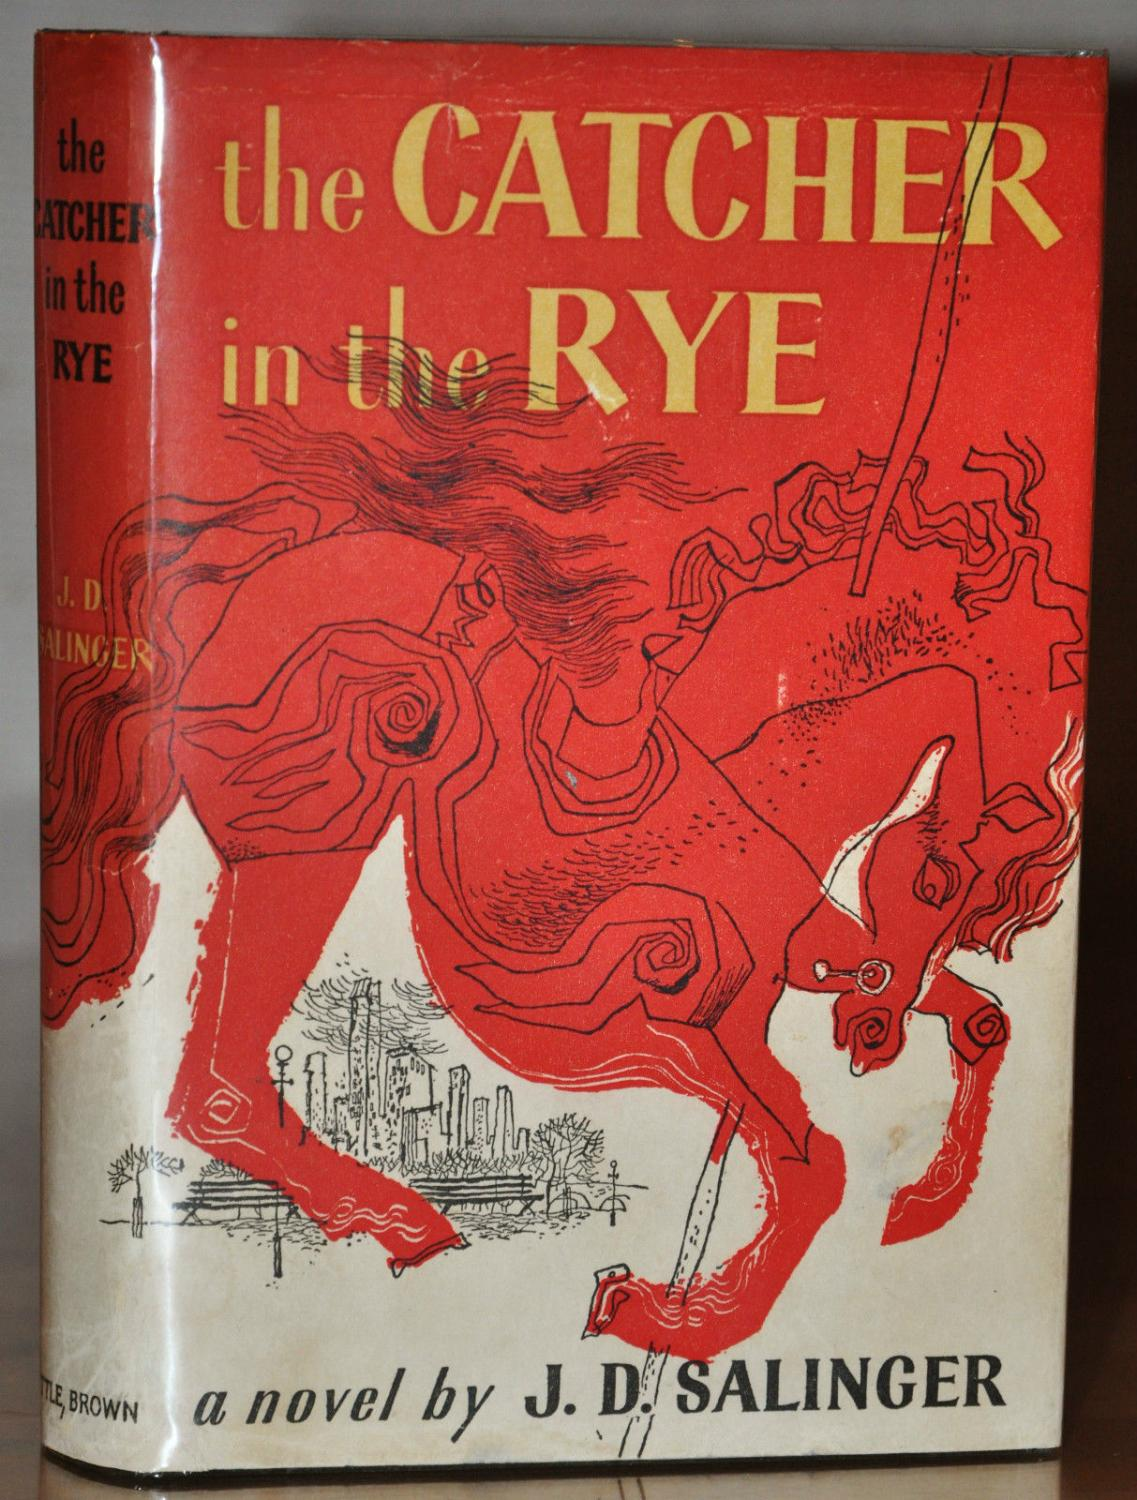 "thesis for catcher in the rye essays Below you will find five outstanding thesis statements for ""catcher in the rye"" by  jd salinger that can be used as essay starters or paper topics all five."